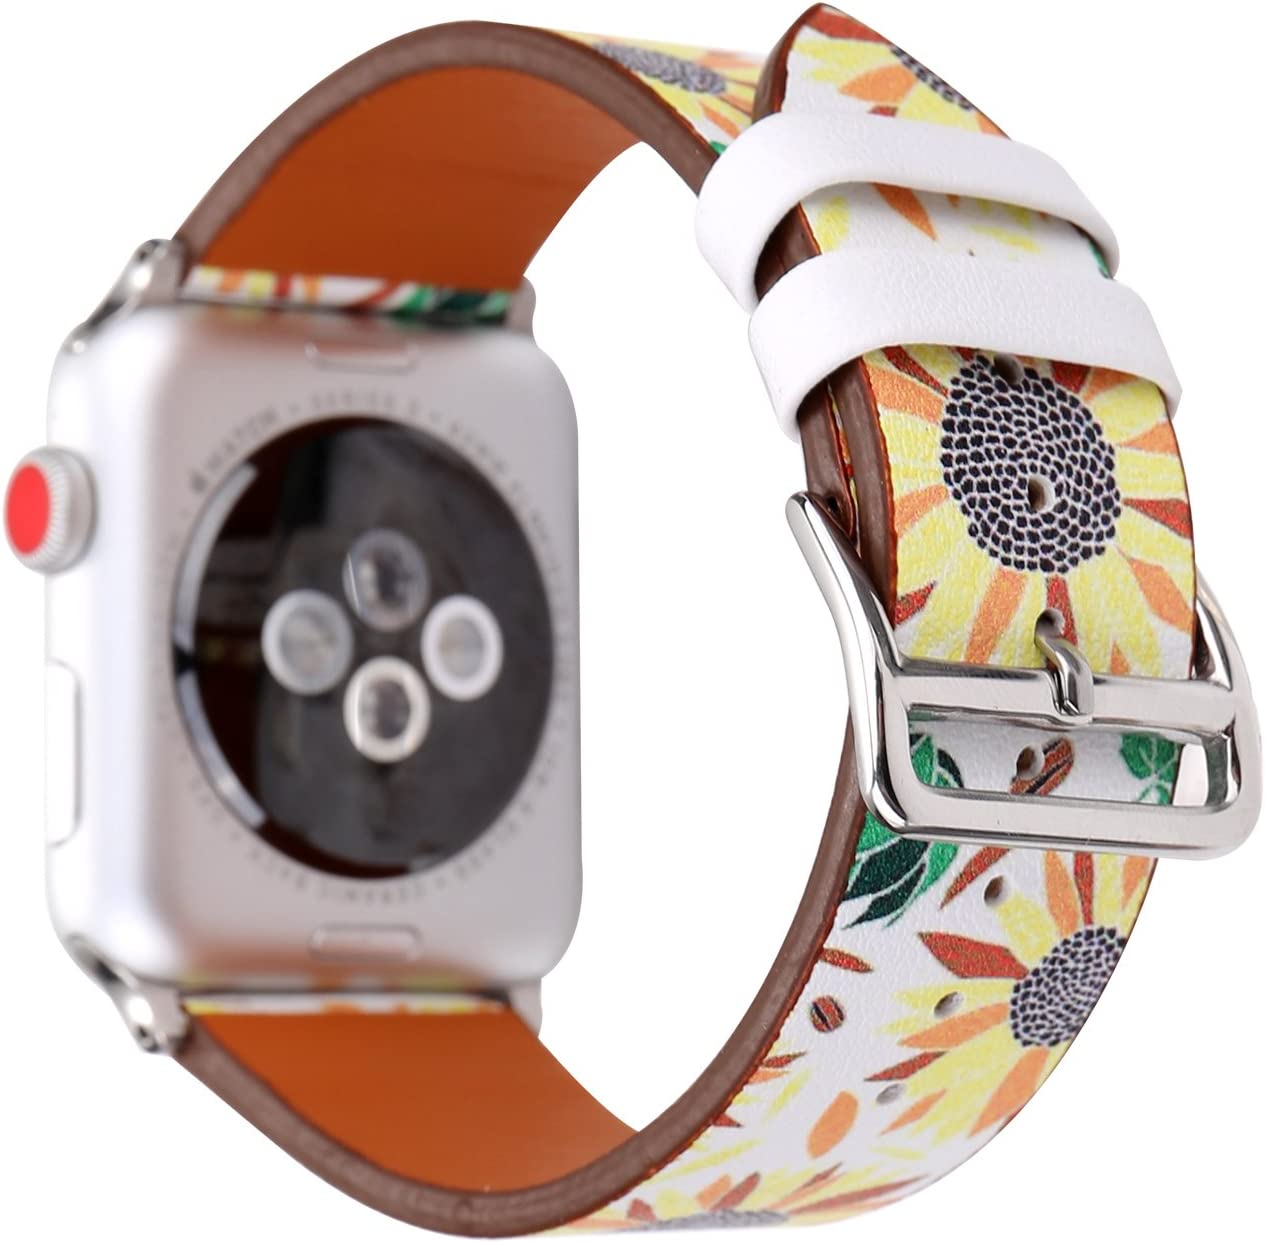 Wonmille Bands For Apple Watch 38mm Sequins Floral Printed Leather Replacement Strap Wrist Watch Band For Apple Watch Iwatch Series 1 Series 2 Series 3 Sunflower 38mm Amazon Com